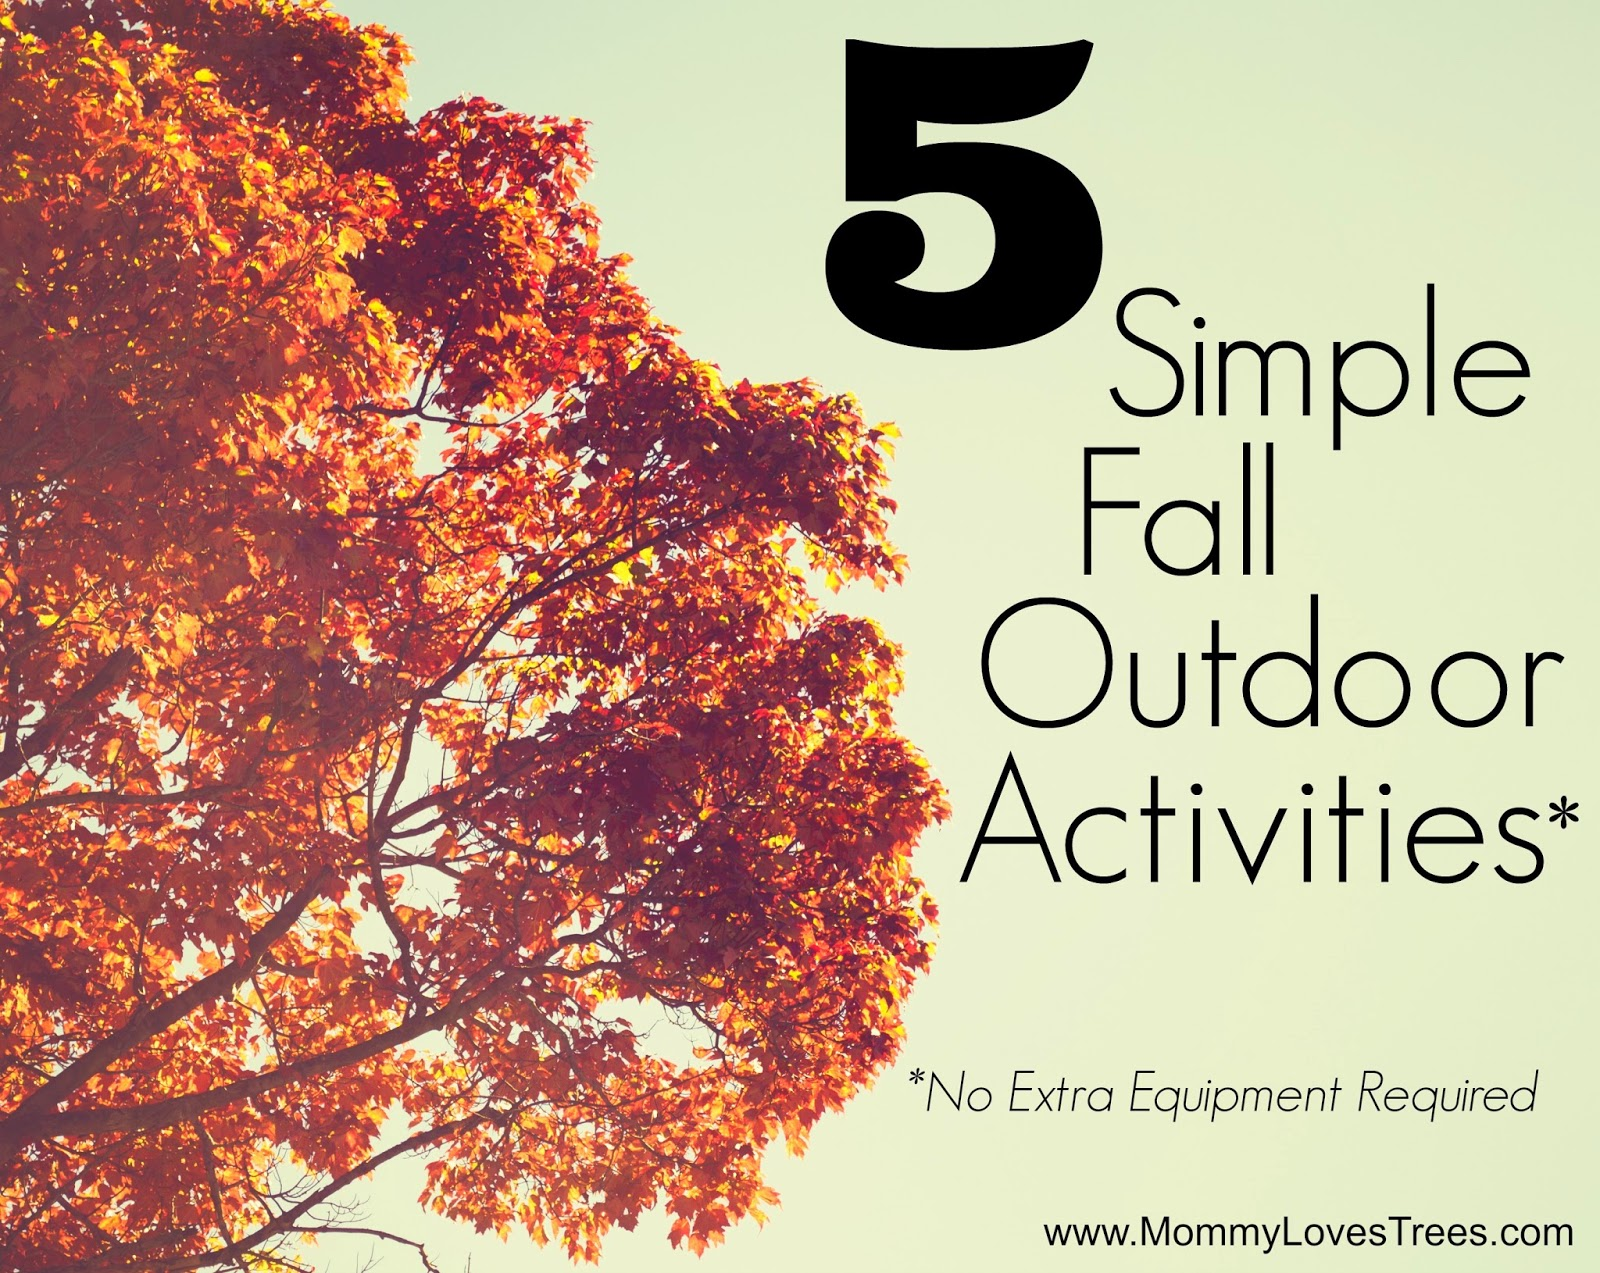 5 Simple Fall Outdoor Activities from Mommy Loves Trees